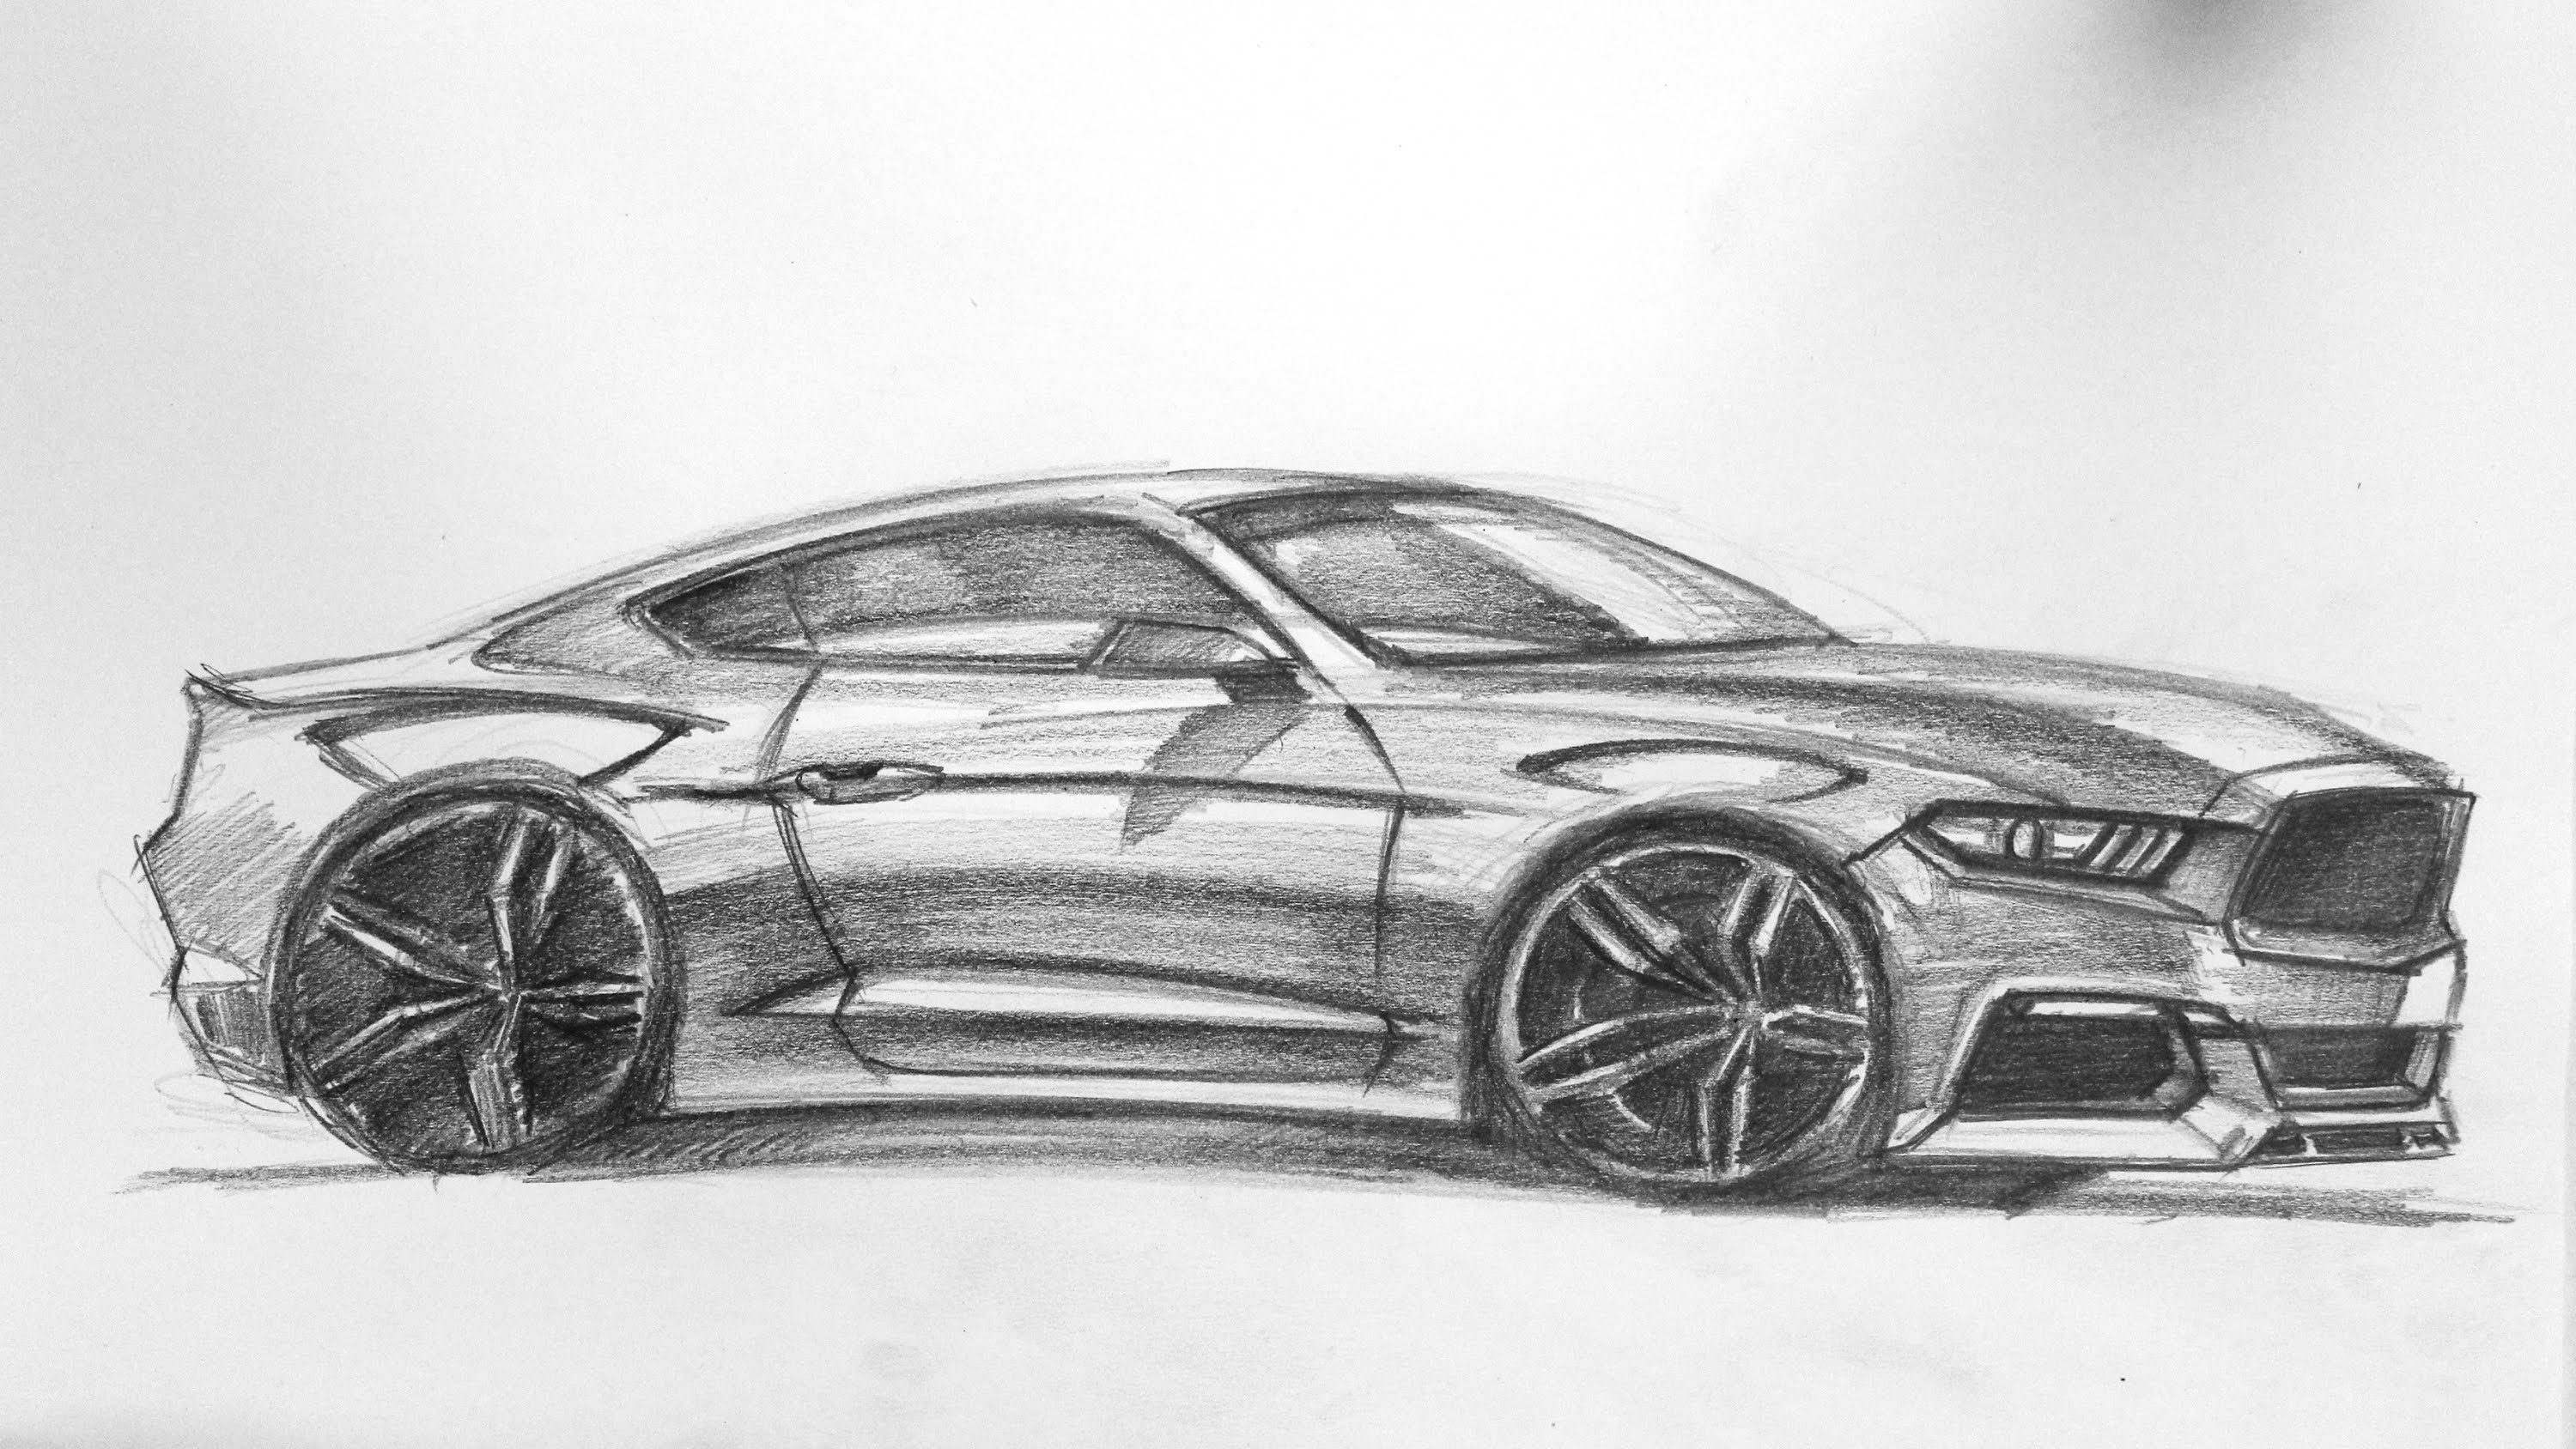 Drawn vehicle mustang gt Mustang 2015 Ford Mustang 2015